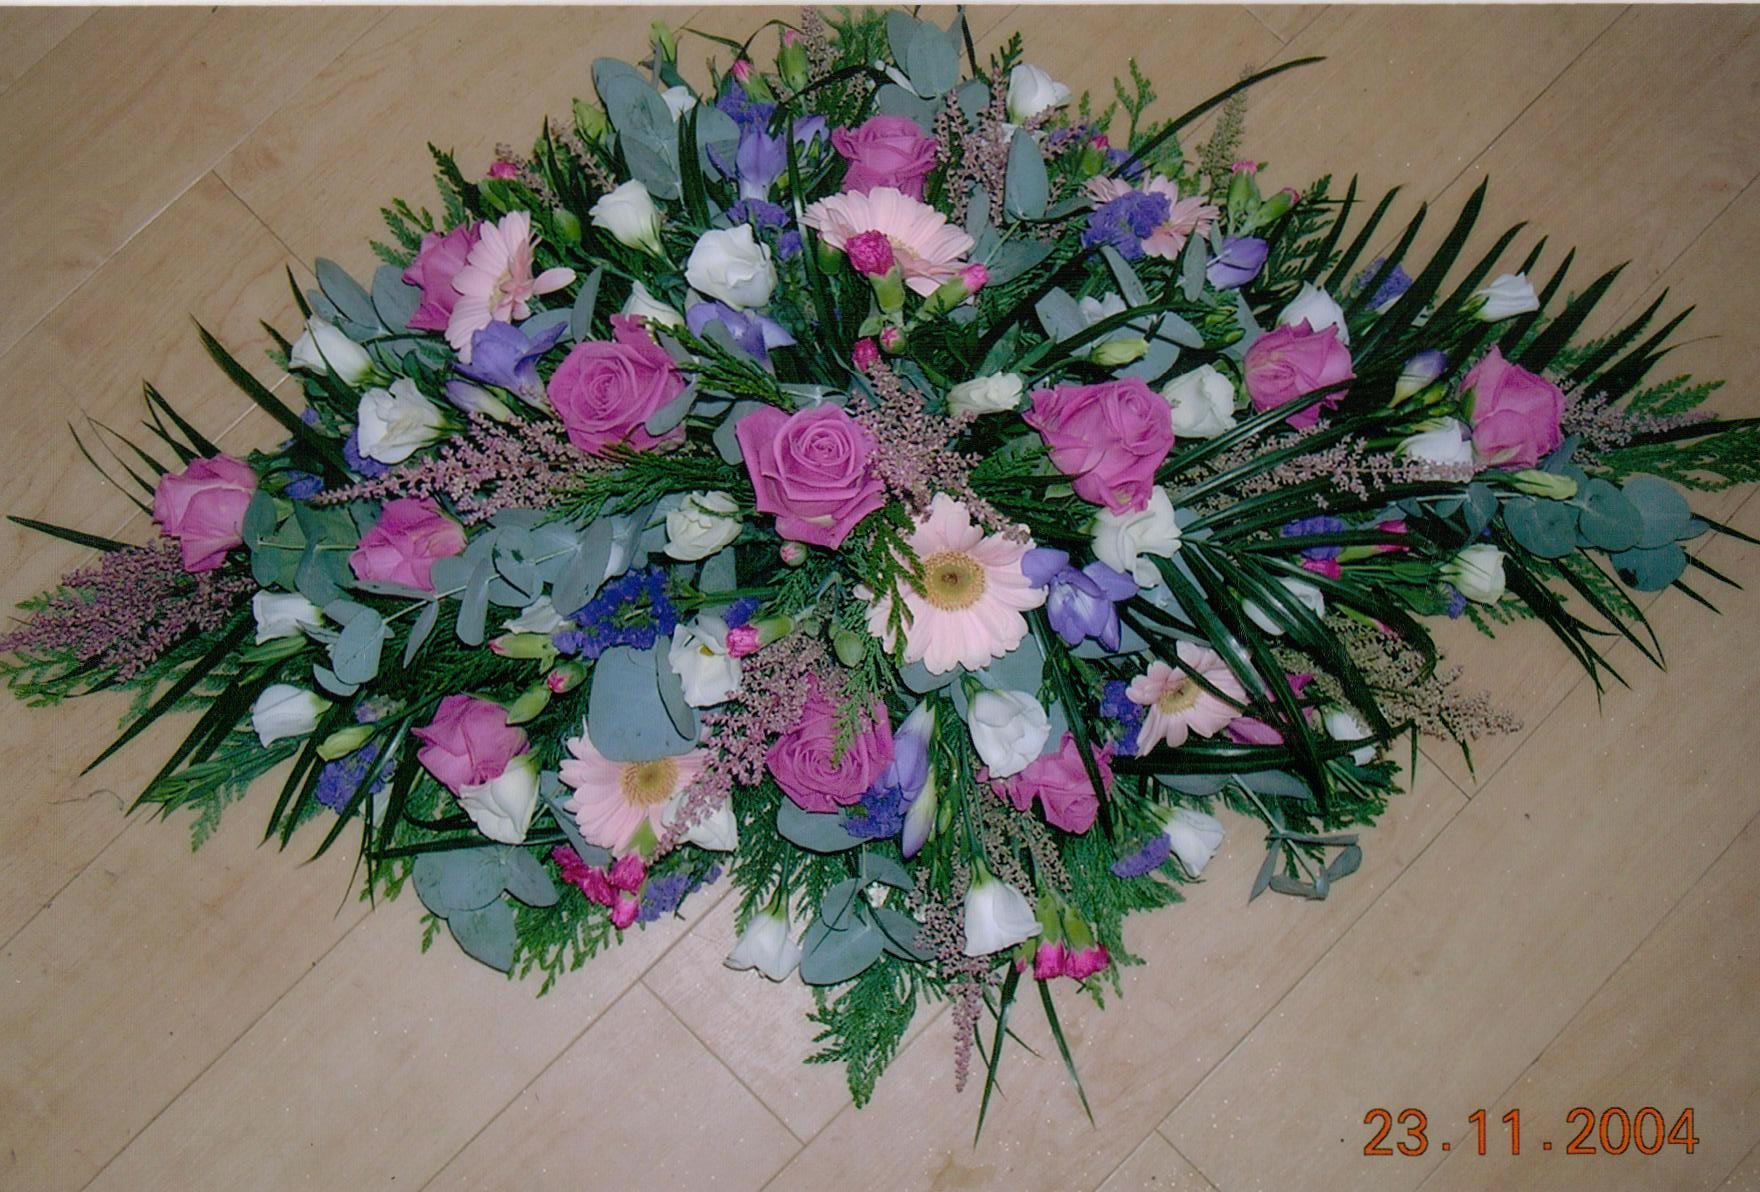 Funeral Flowers And Arrangements Essex And Suffolk From Bizzie Lizzie